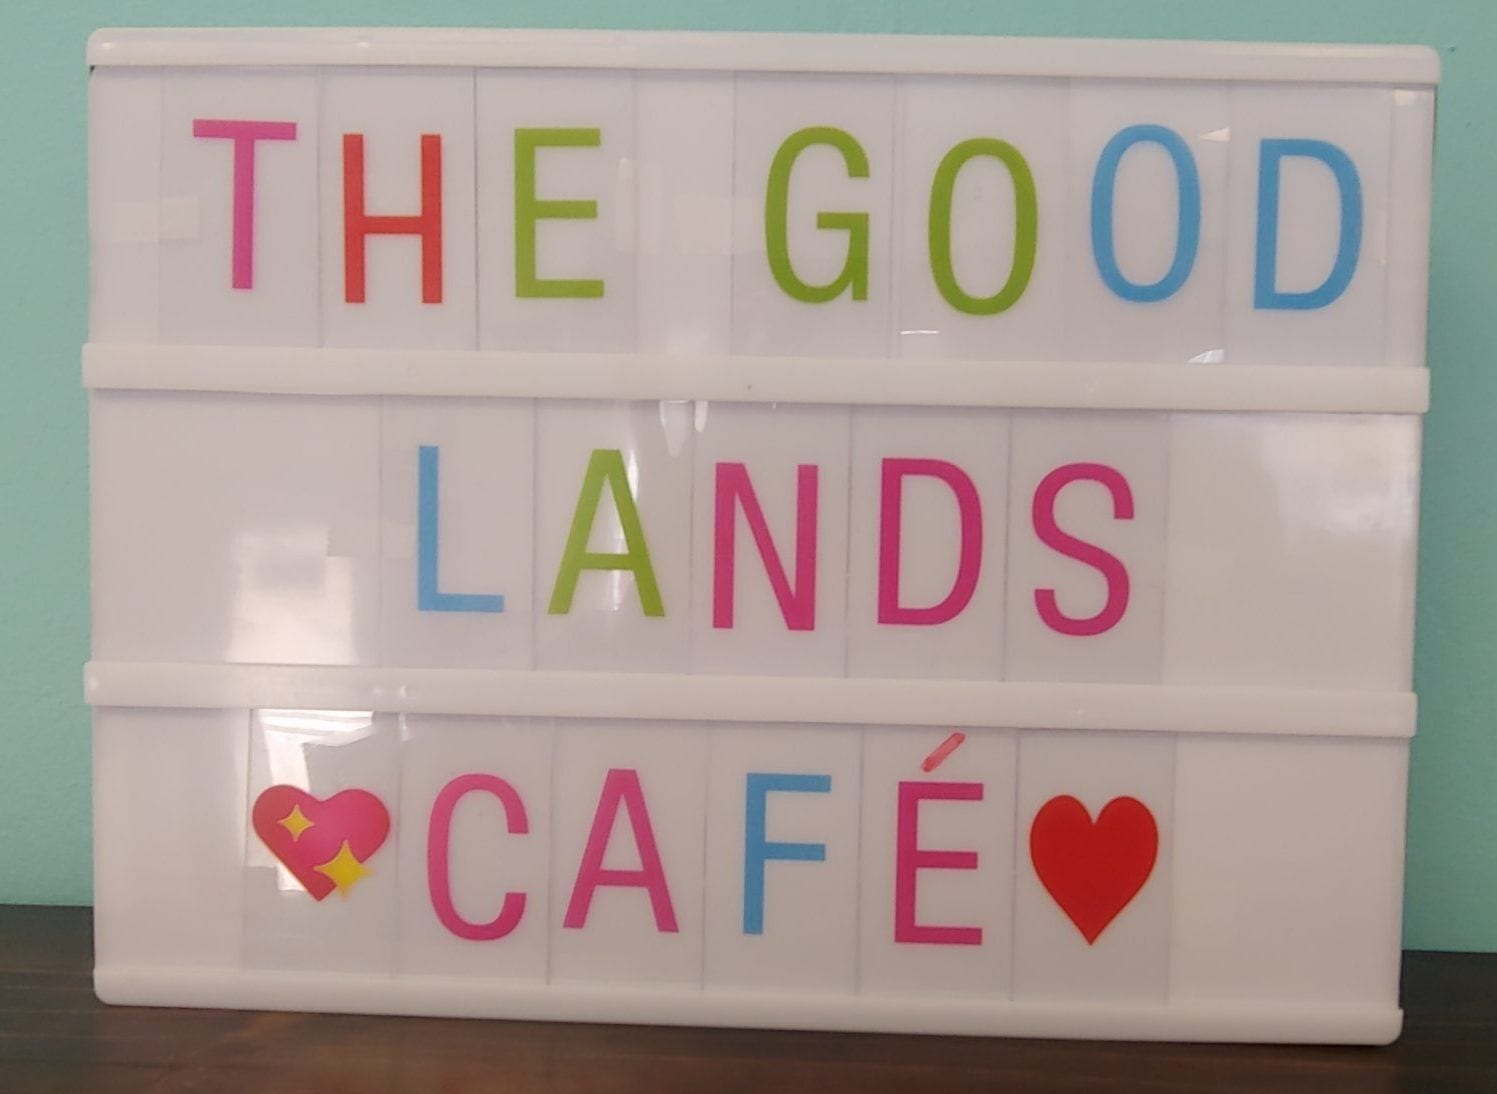 The Good Lands sign